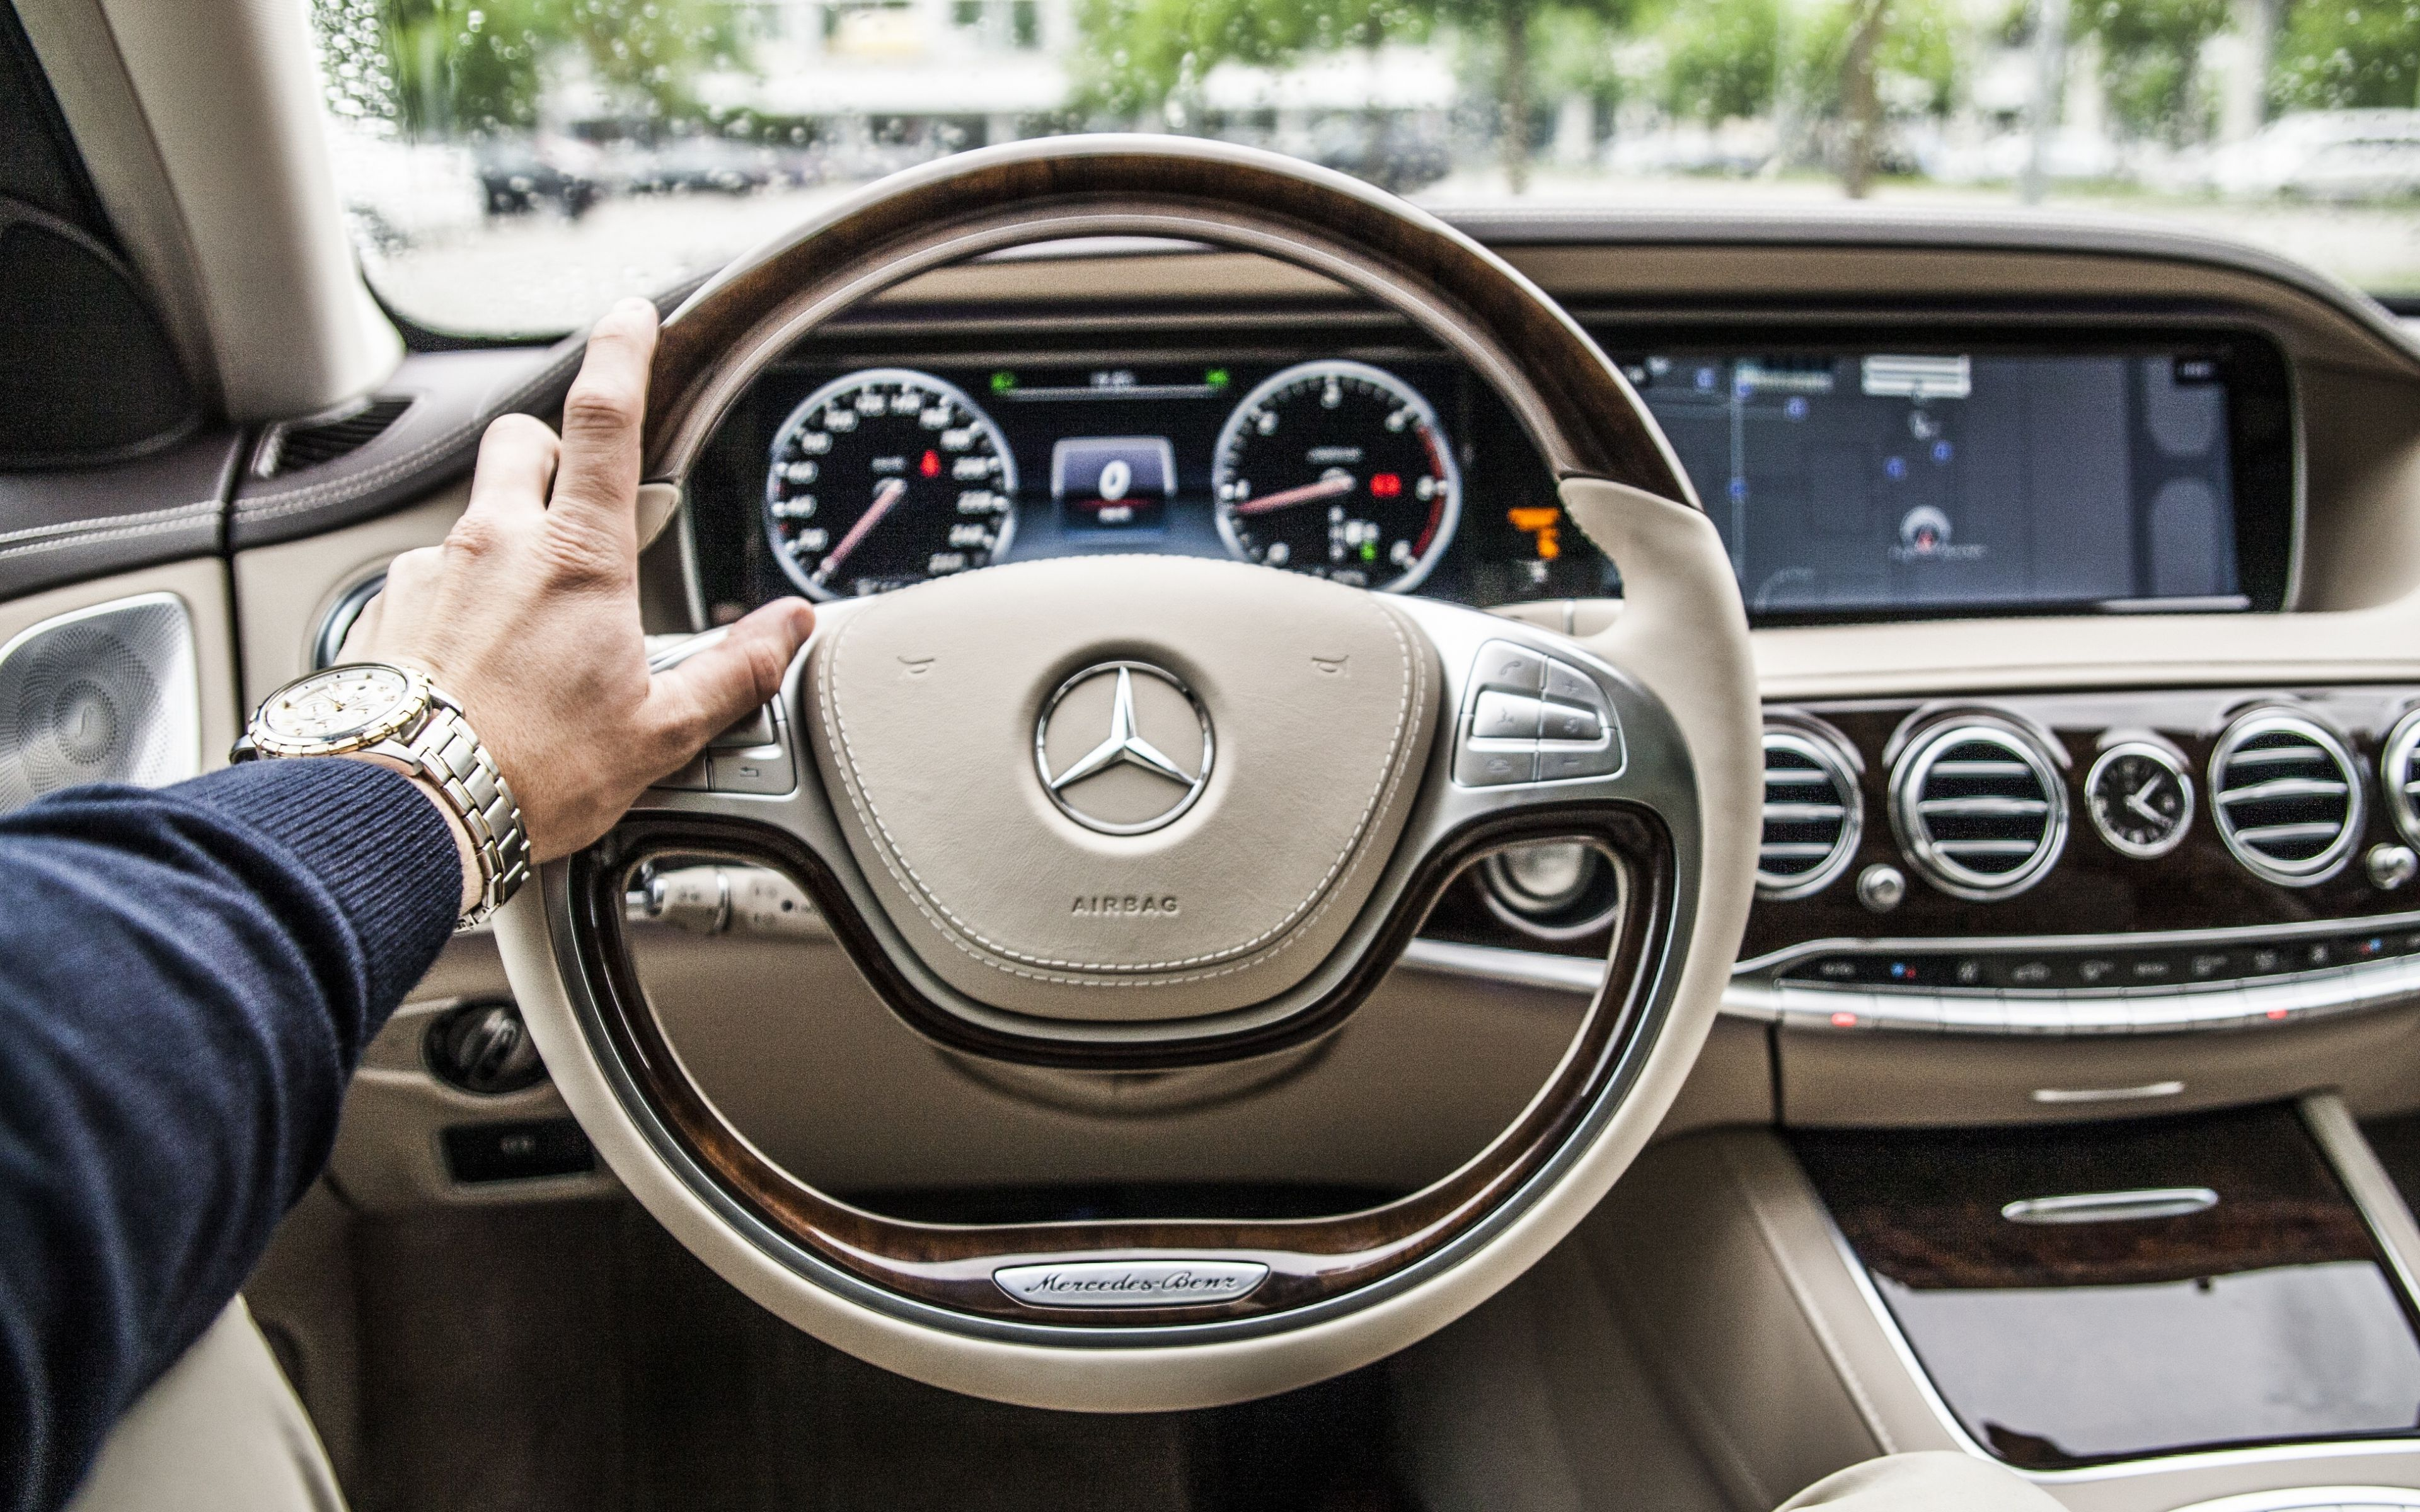 Mercedes Benz Steering Wheel Car Interior HD Wallpaper ...